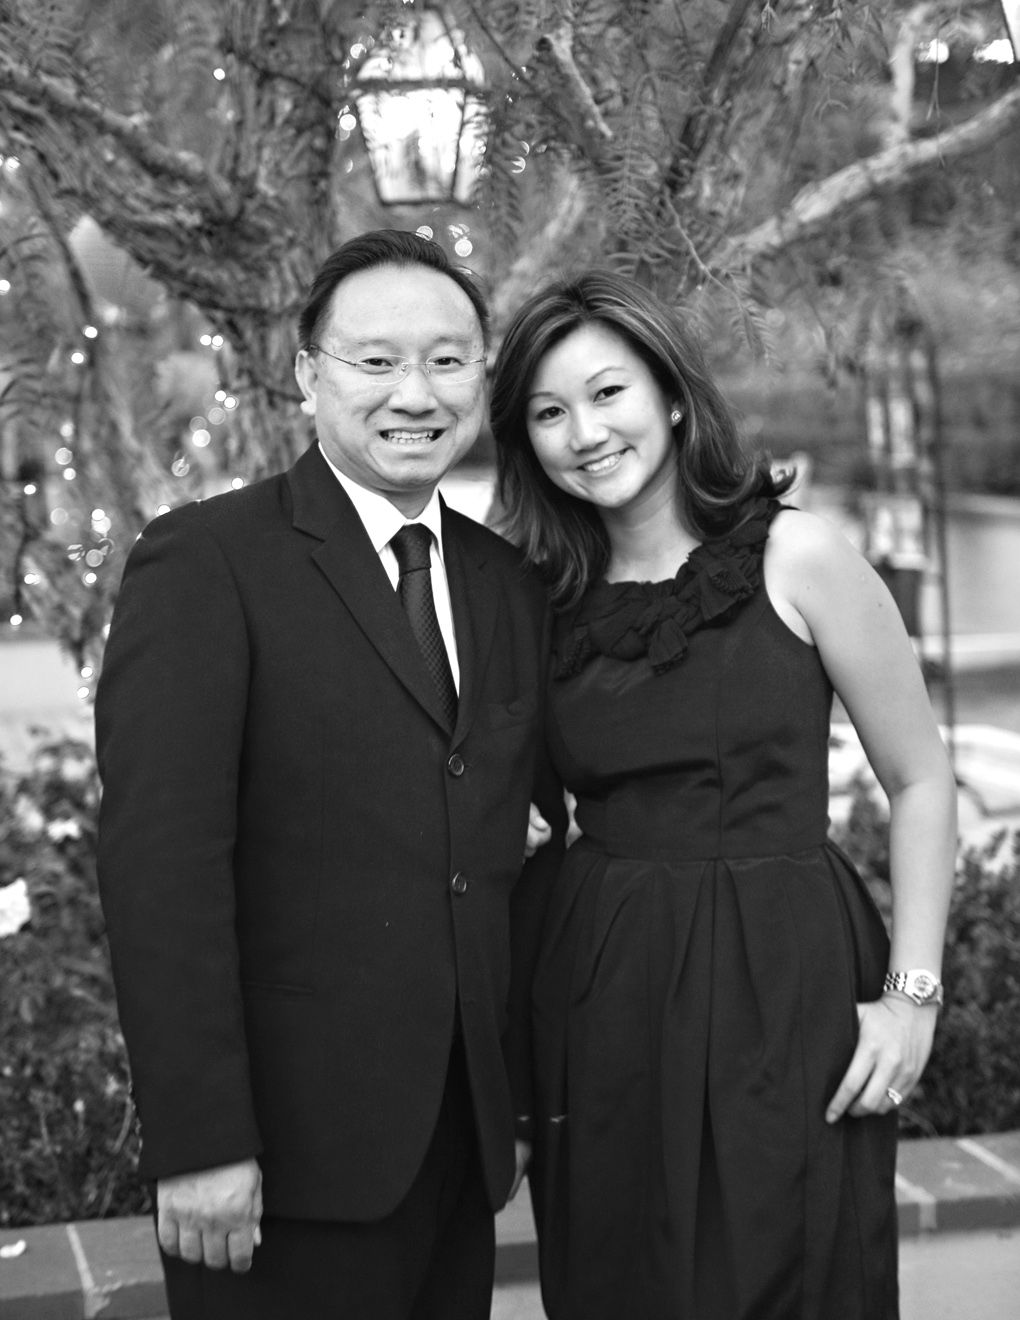 Pleased to meet you... an interview with uber wedding planners Wynn Austin & Thomas Bui  http://www.sandiegowedding.com/blog/pleased-to-meet-you-an-interview-with-uber-wedding-planners-wynn-austin-thomas-bui/2016/6/2